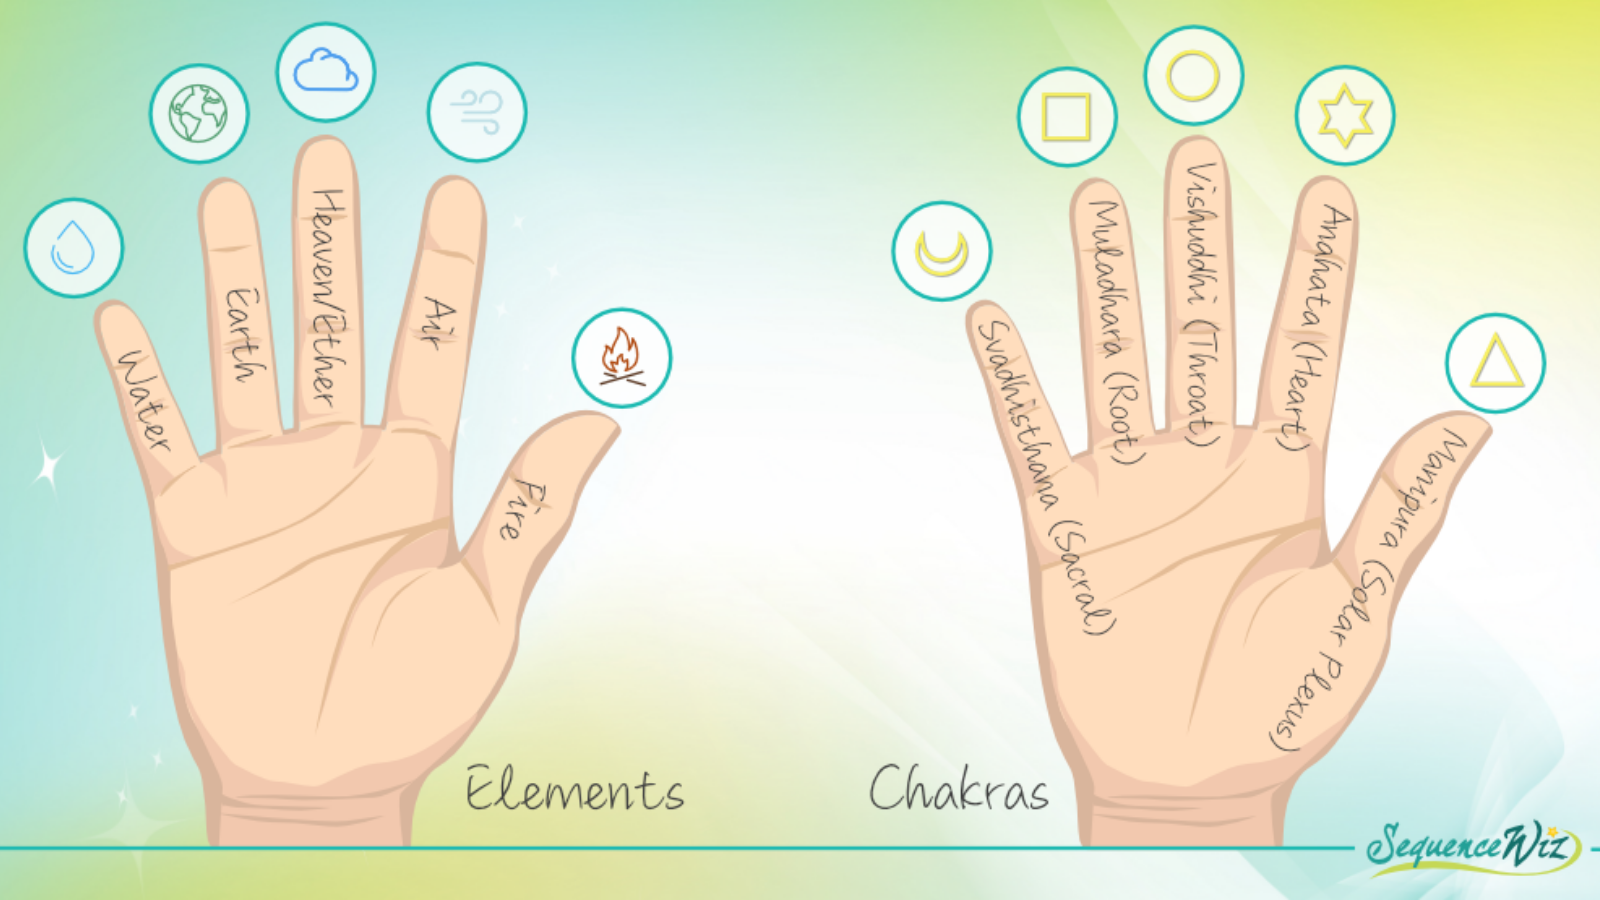 Illustration showing the different chakras and elements represented in our fingers and hands